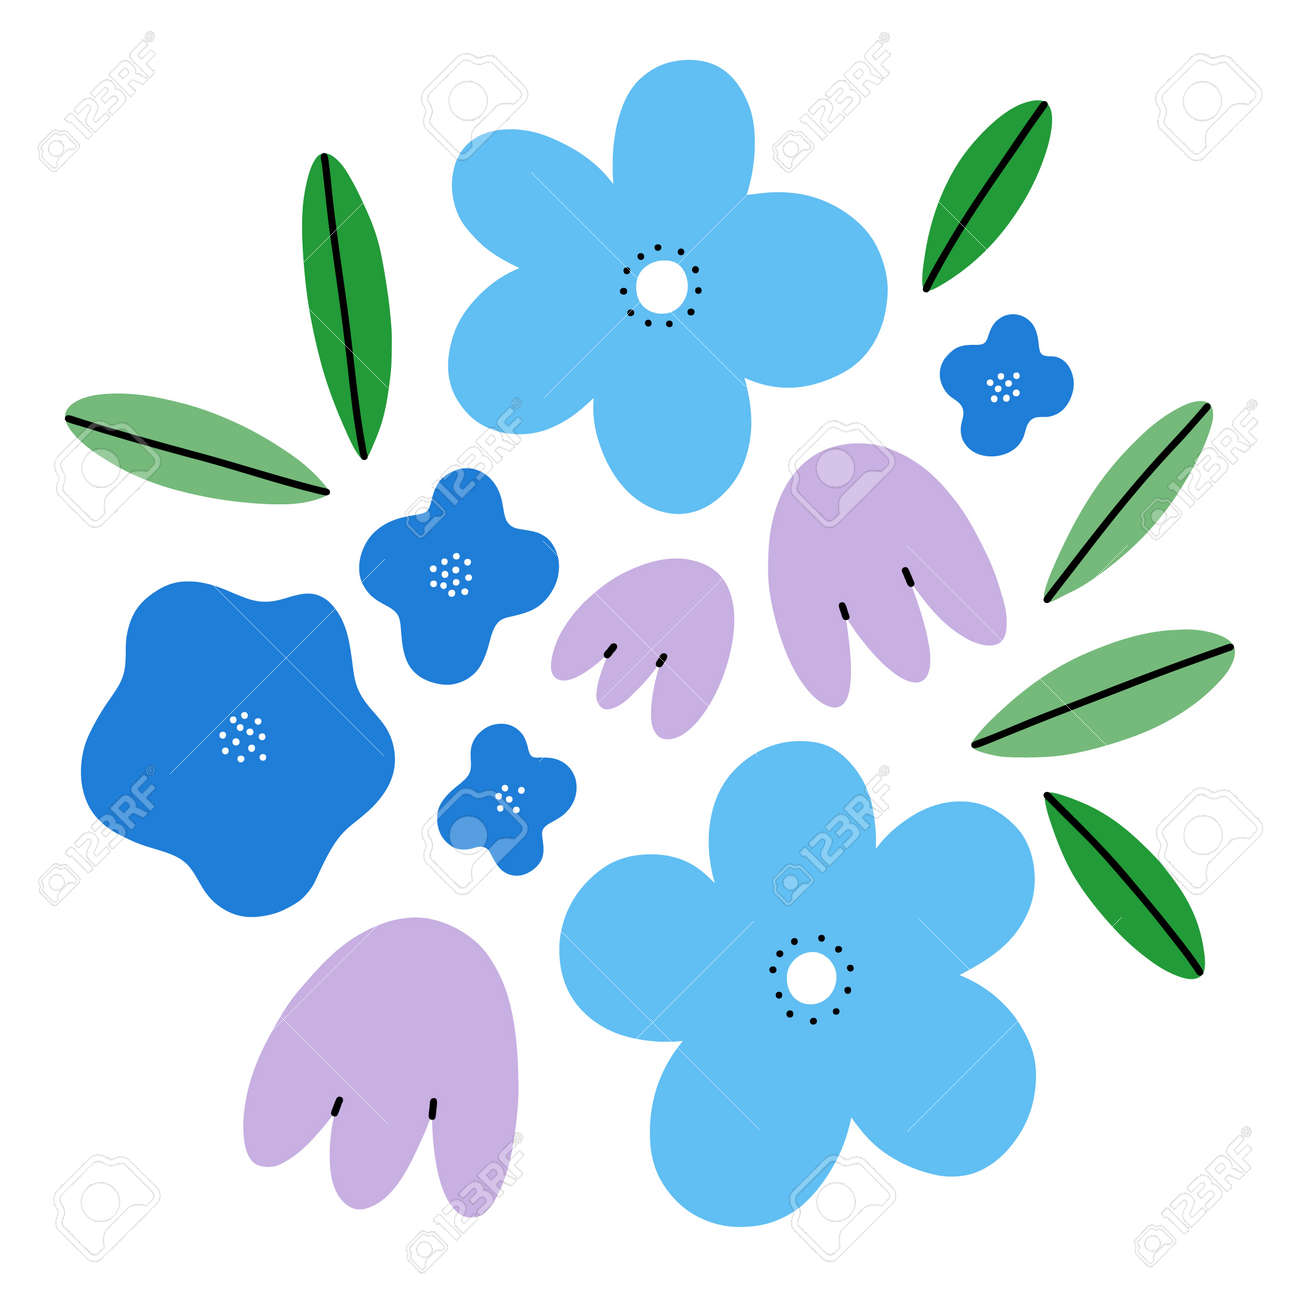 Abstract spring flowers simple vector composition, blue tones illustration, isolated on white background - 167479969